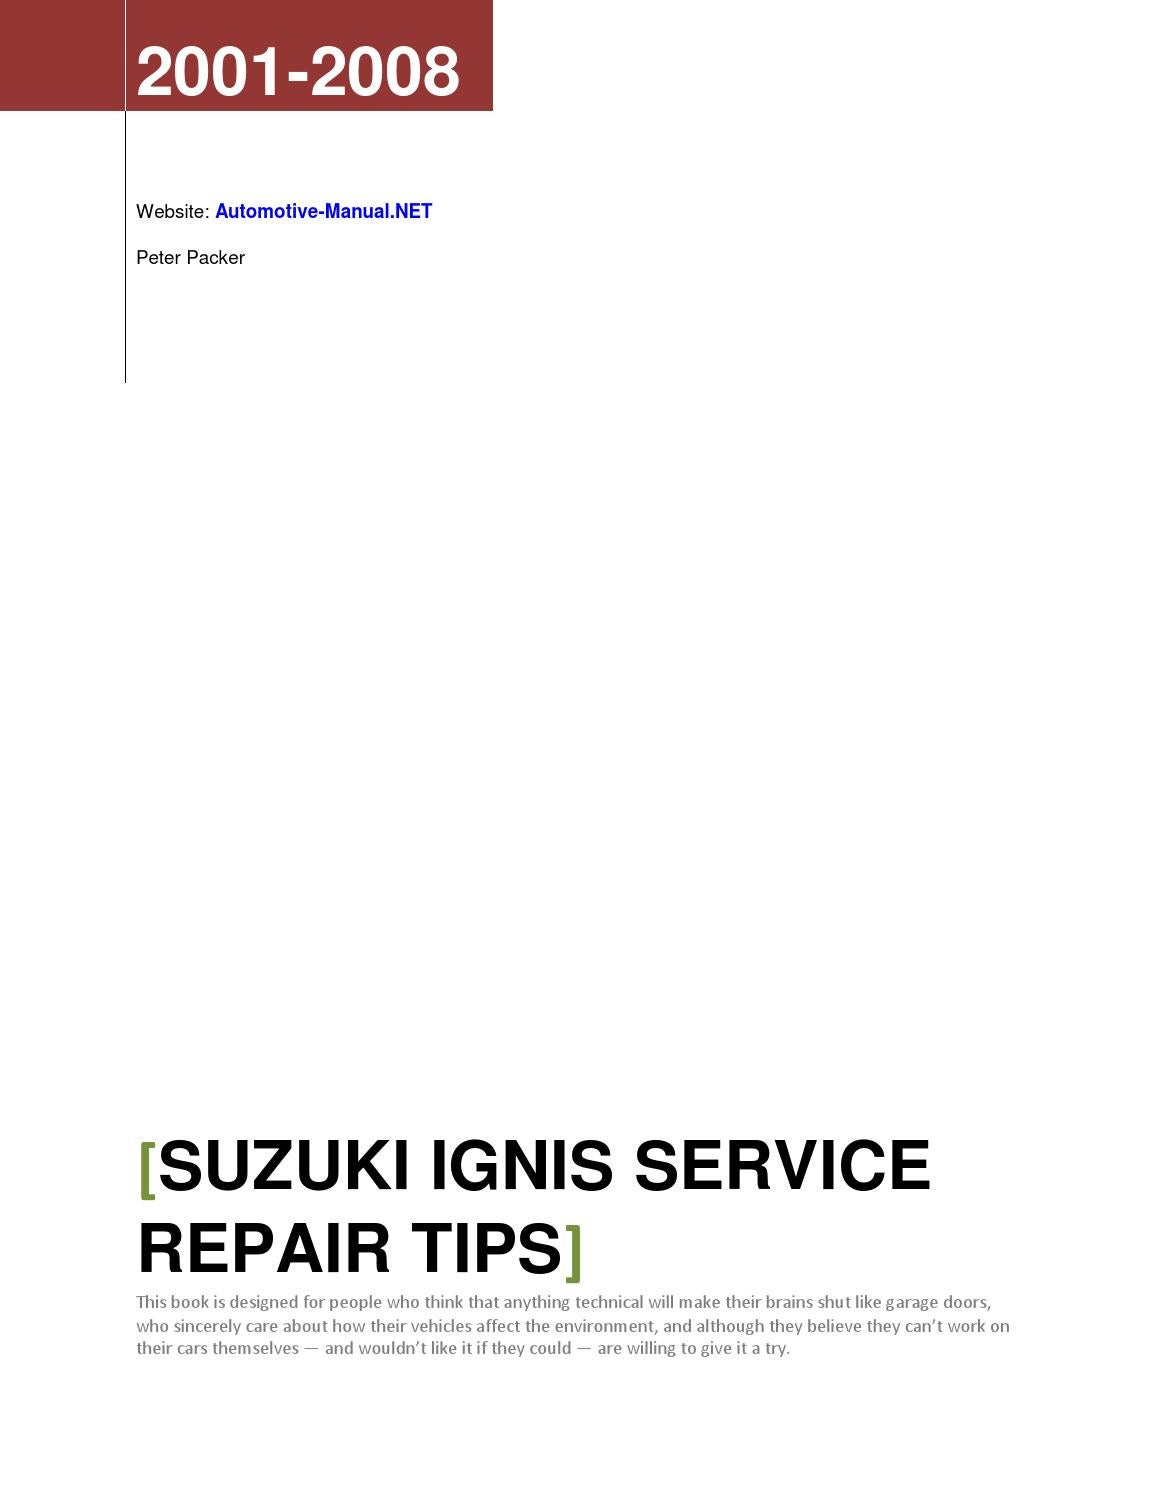 page_1 suzuki ignis 2001 2008 service repair tips by armando oliver issuu suzuki ignis sport wiring diagram at eliteediting.co